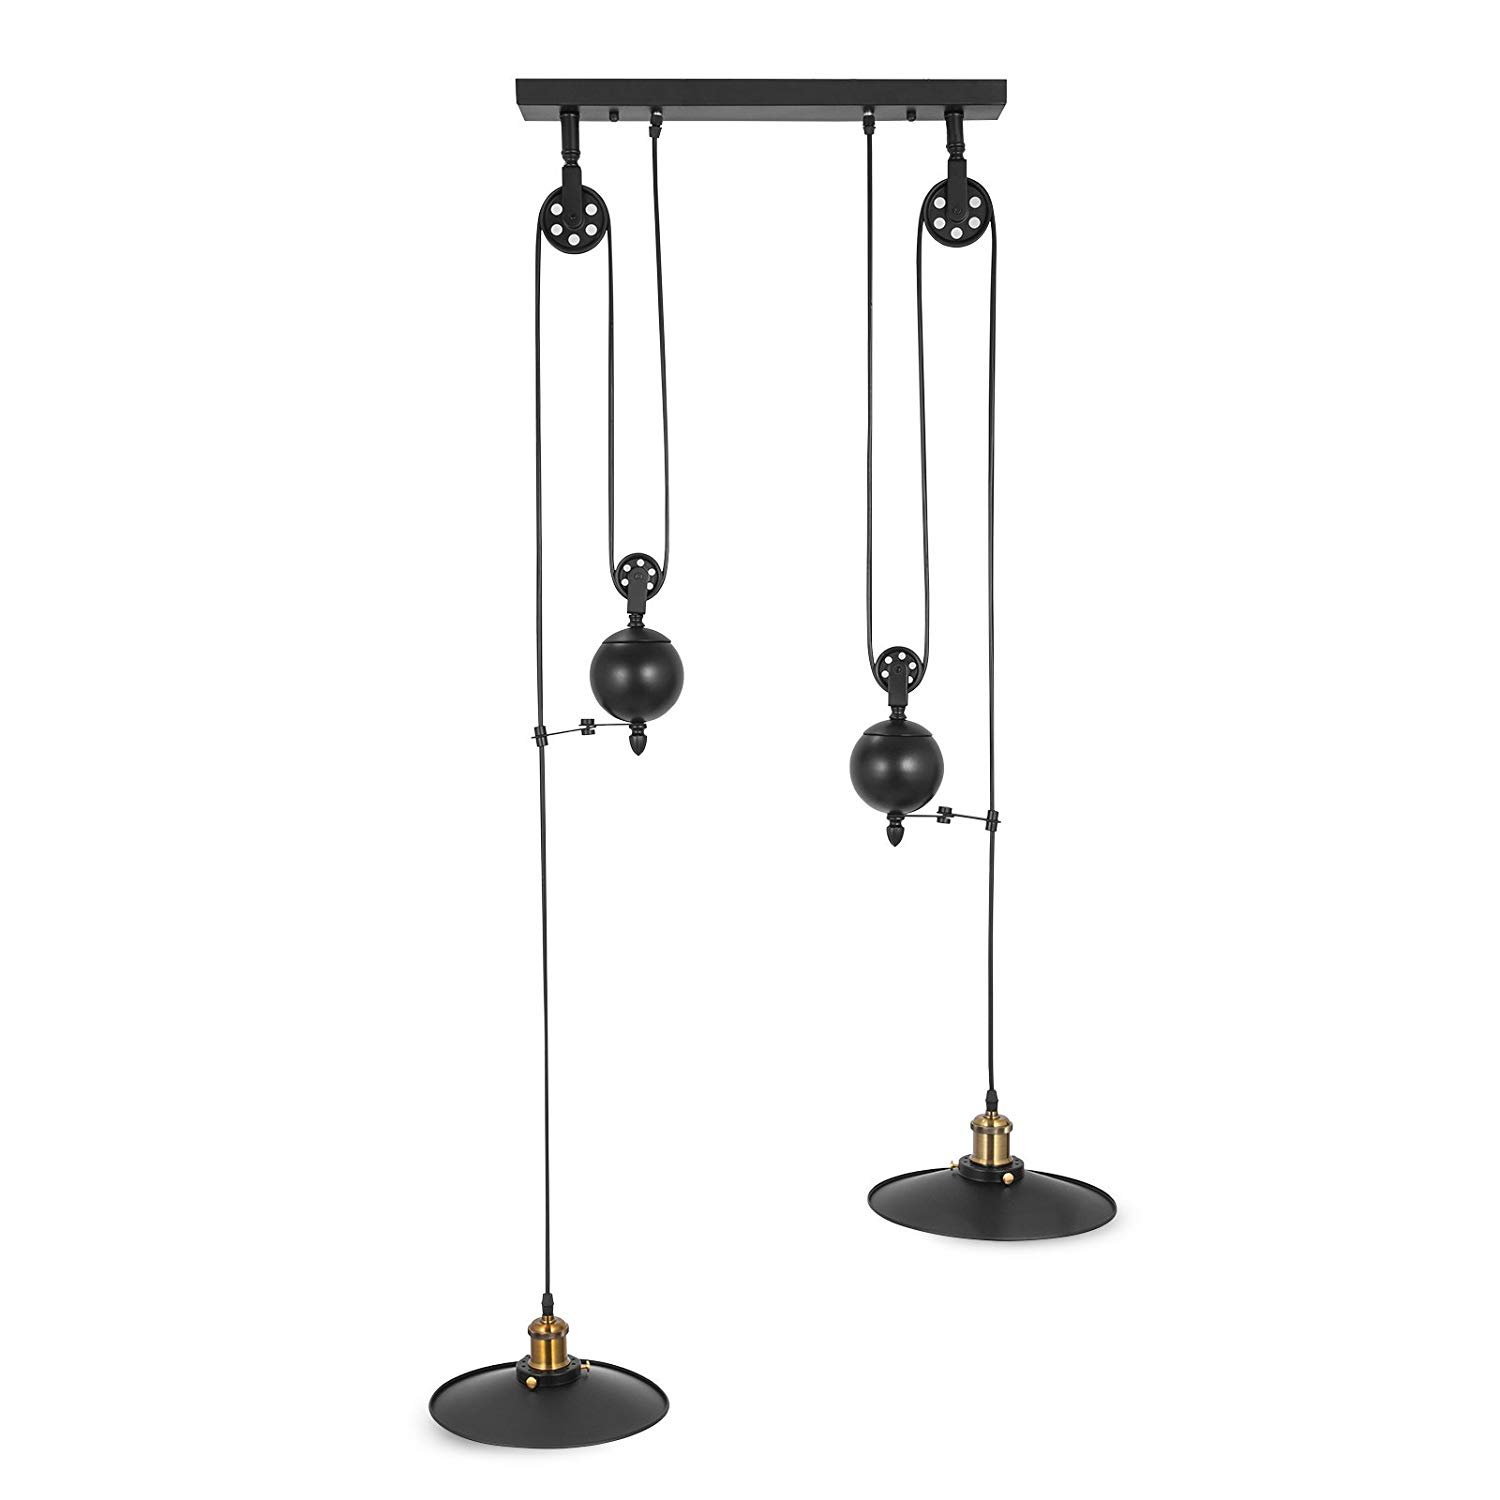 OrangeA Pulley Pendant Light 19.7'' Dia x 36.3'' H Vintage Ceiling Lamp 39'' Adjustable Cable Retractable Hanging Pendant Light Without Plug in Cord for 15-20㎡ Room